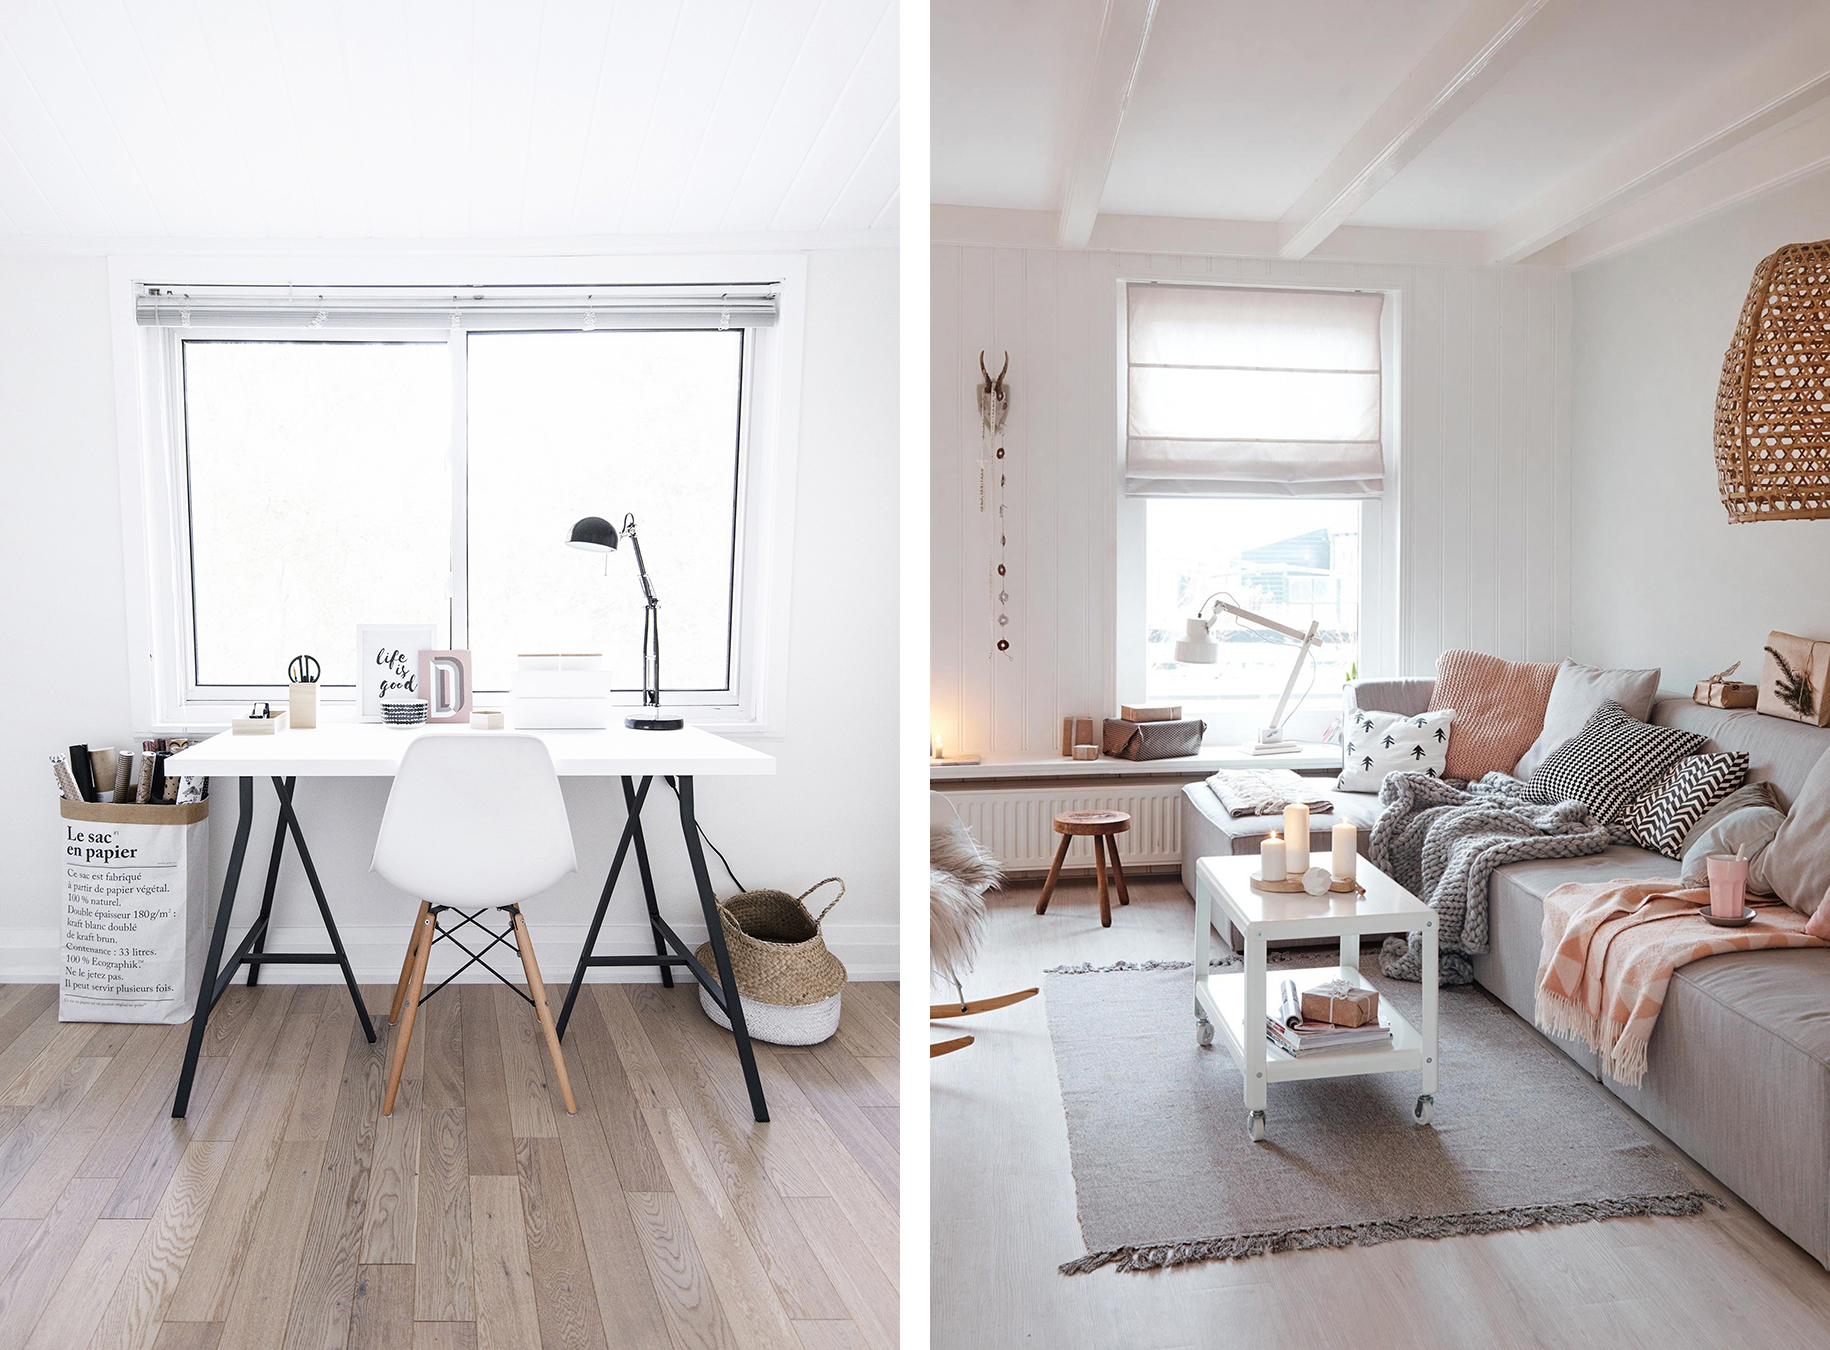 Scandi Style Top 10 Tips For Adding Scandinavian Style To Your Home